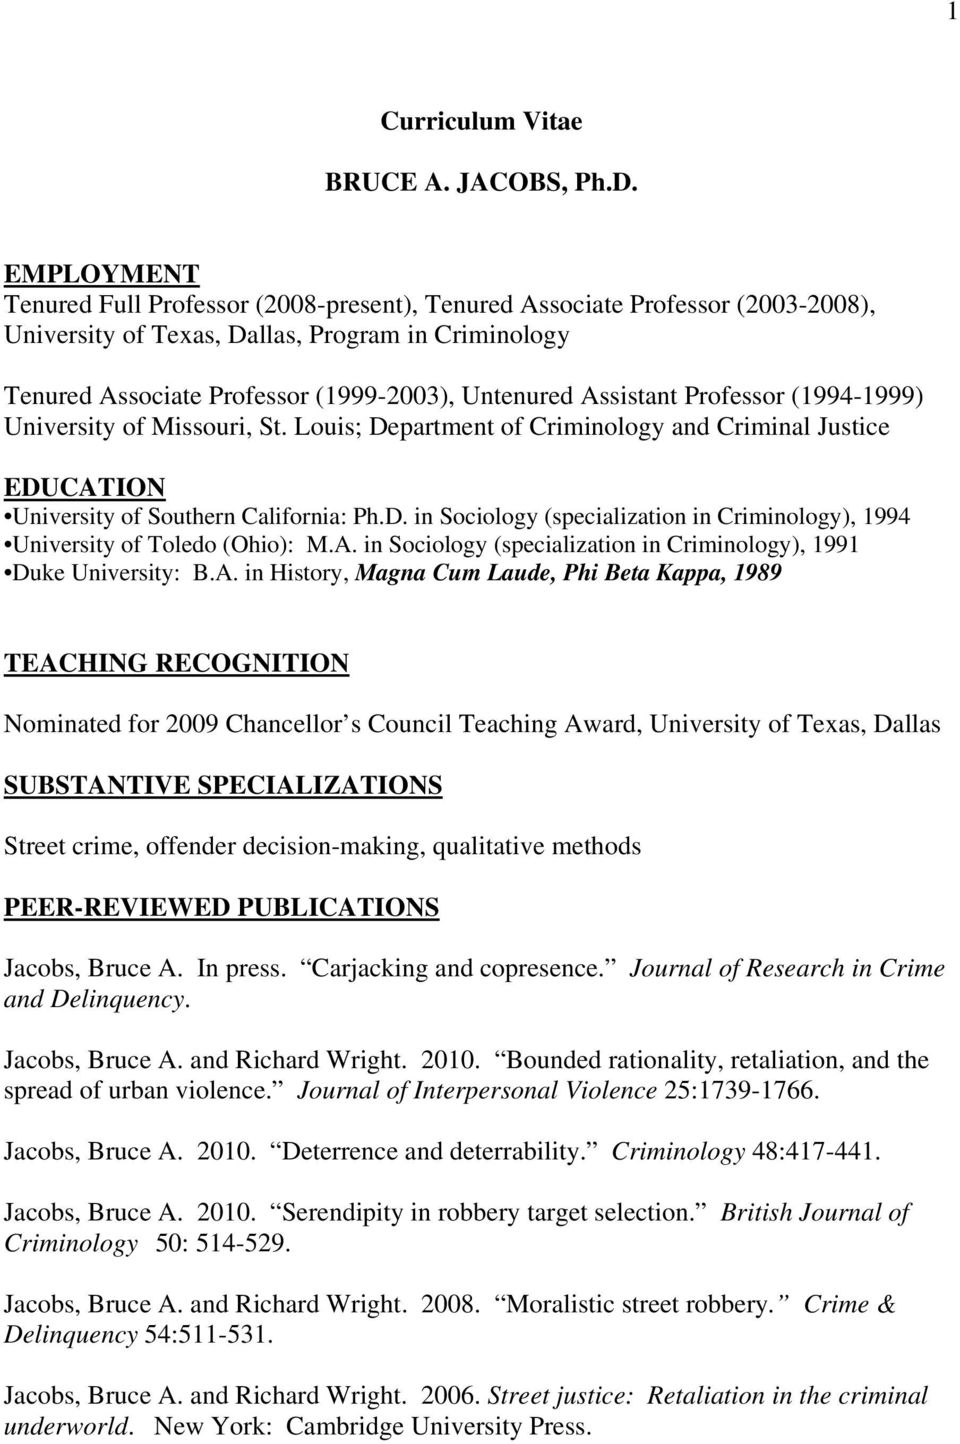 Assistant Professor (1994-1999) University of Missouri, St. Louis; Department of Criminology and Criminal Justice EDUCATION University of Southern California: Ph.D. in Sociology (specialization in Criminology), 1994 University of Toledo (Ohio): M.